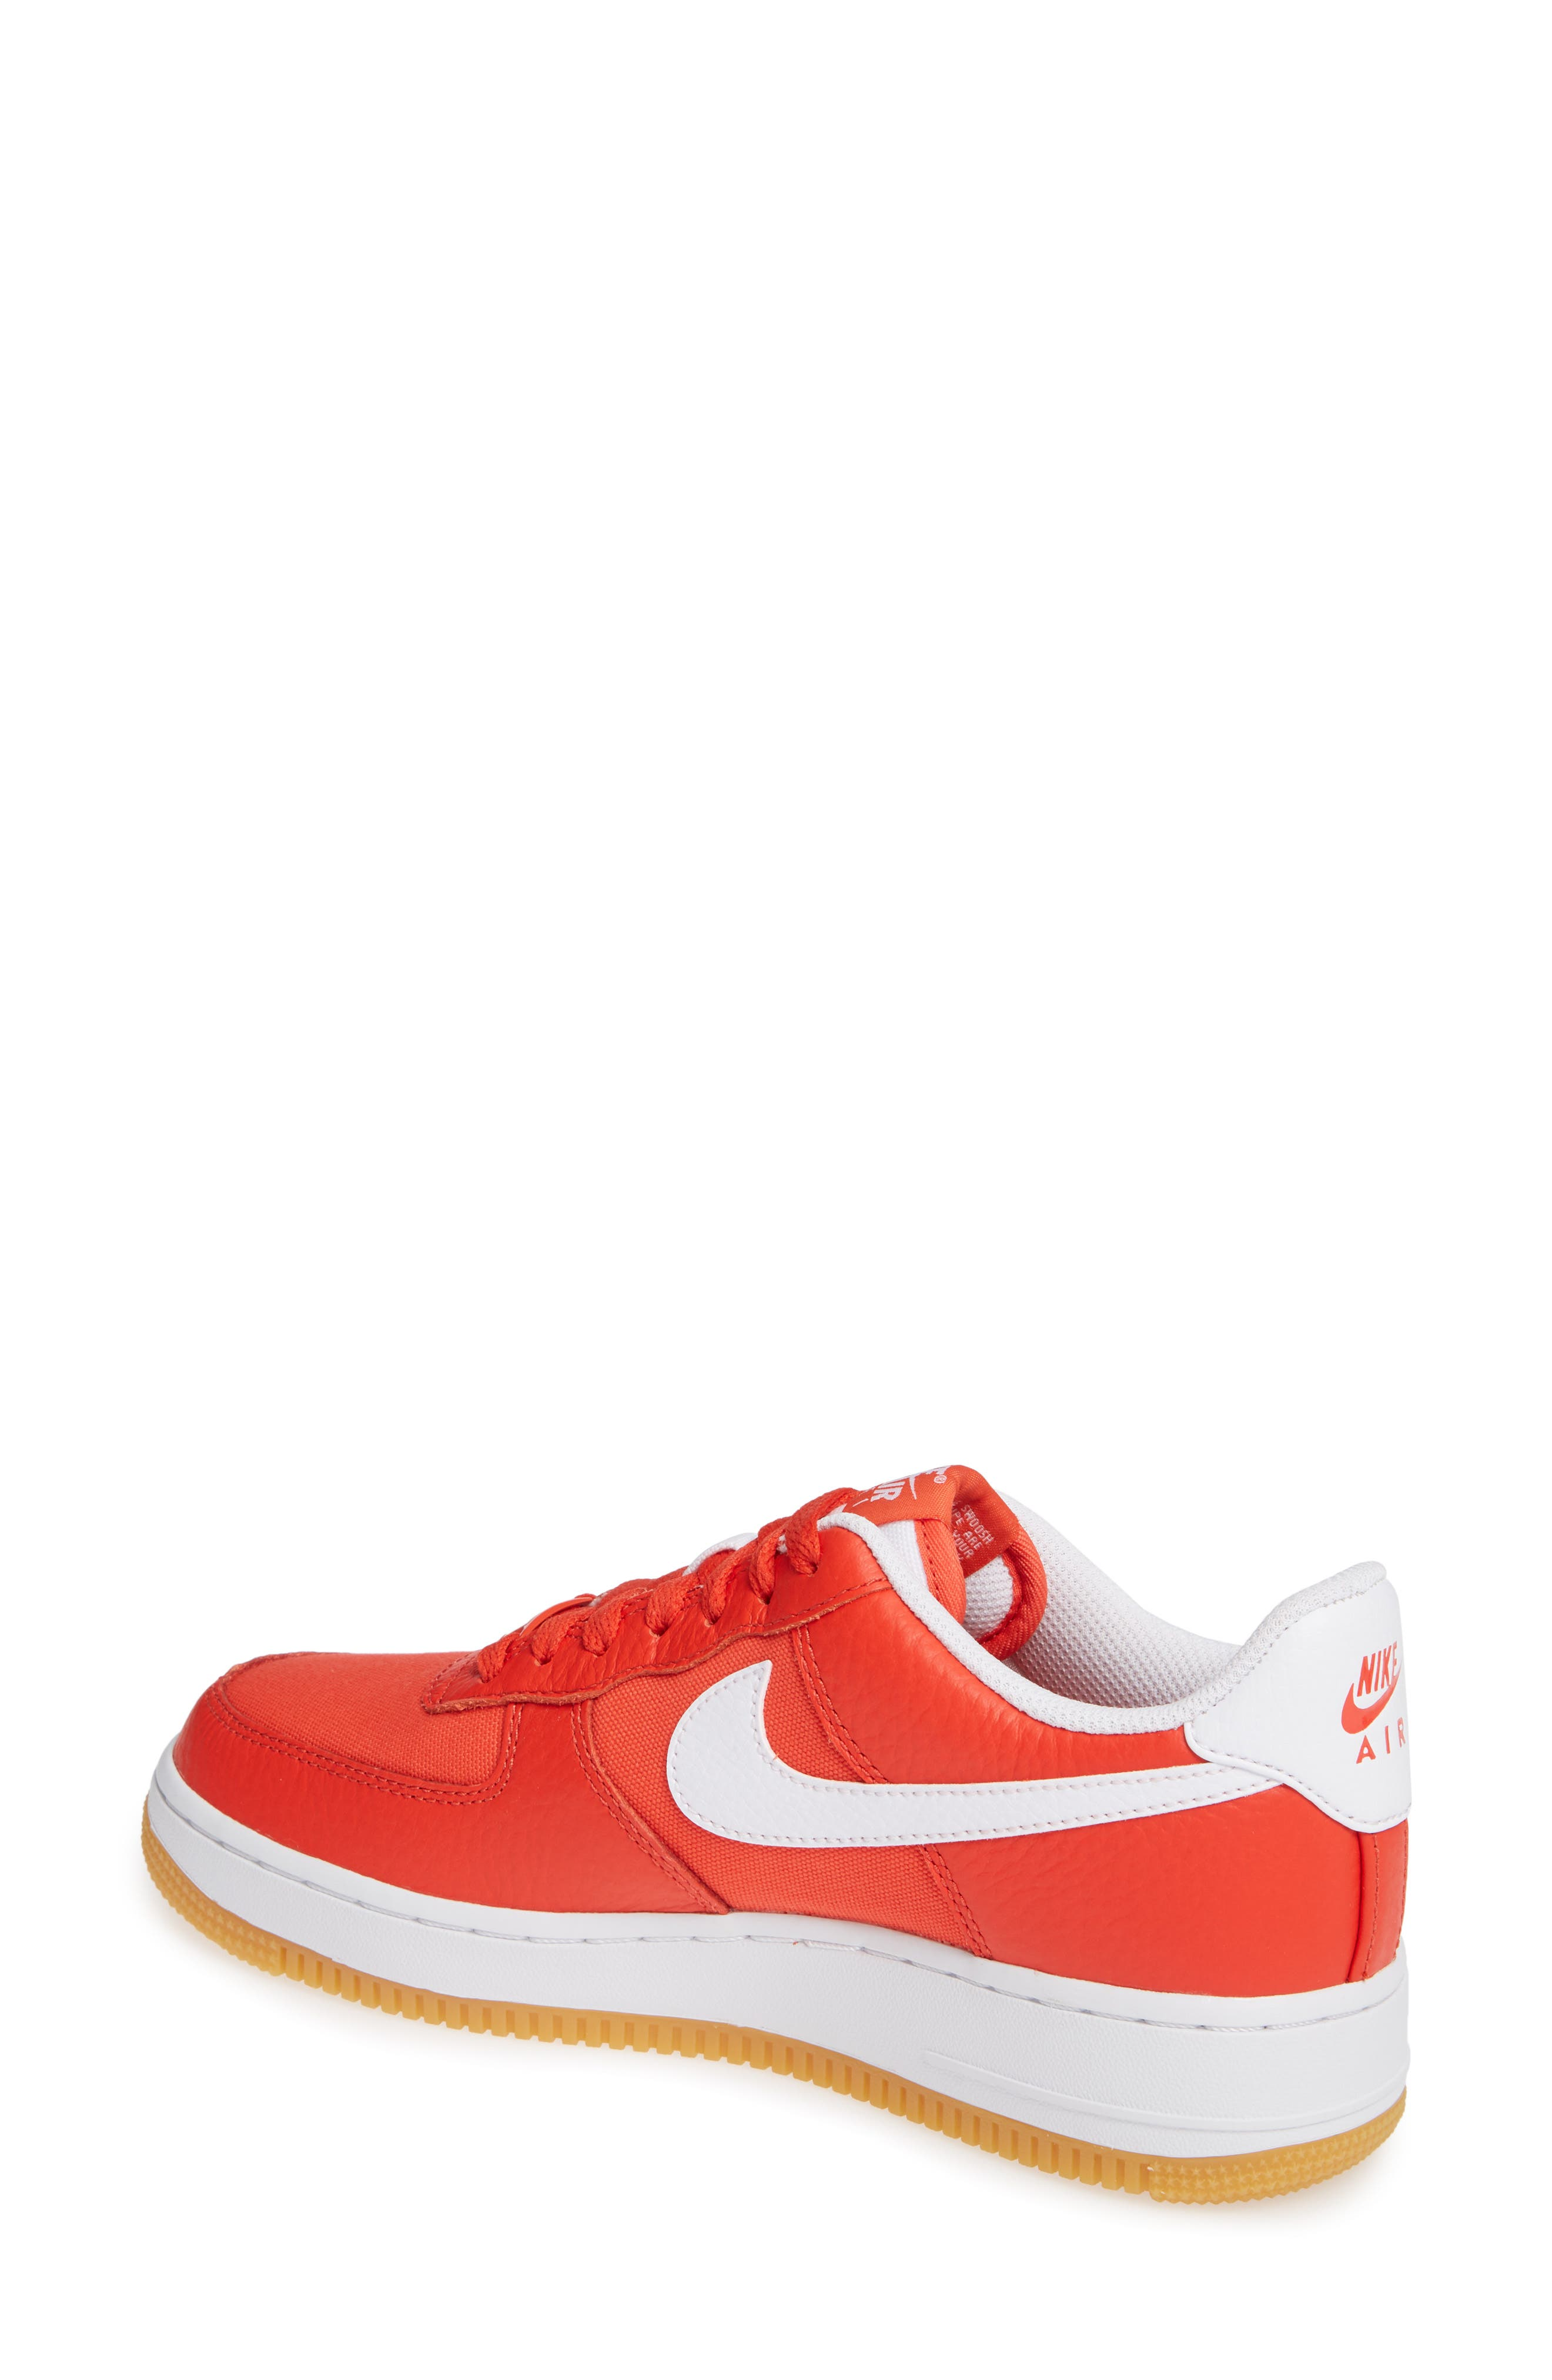 Air Force 1 '07 Premium Sneaker,                             Alternate thumbnail 2, color,                             RED/ WHITE/ LIGHT BROWN